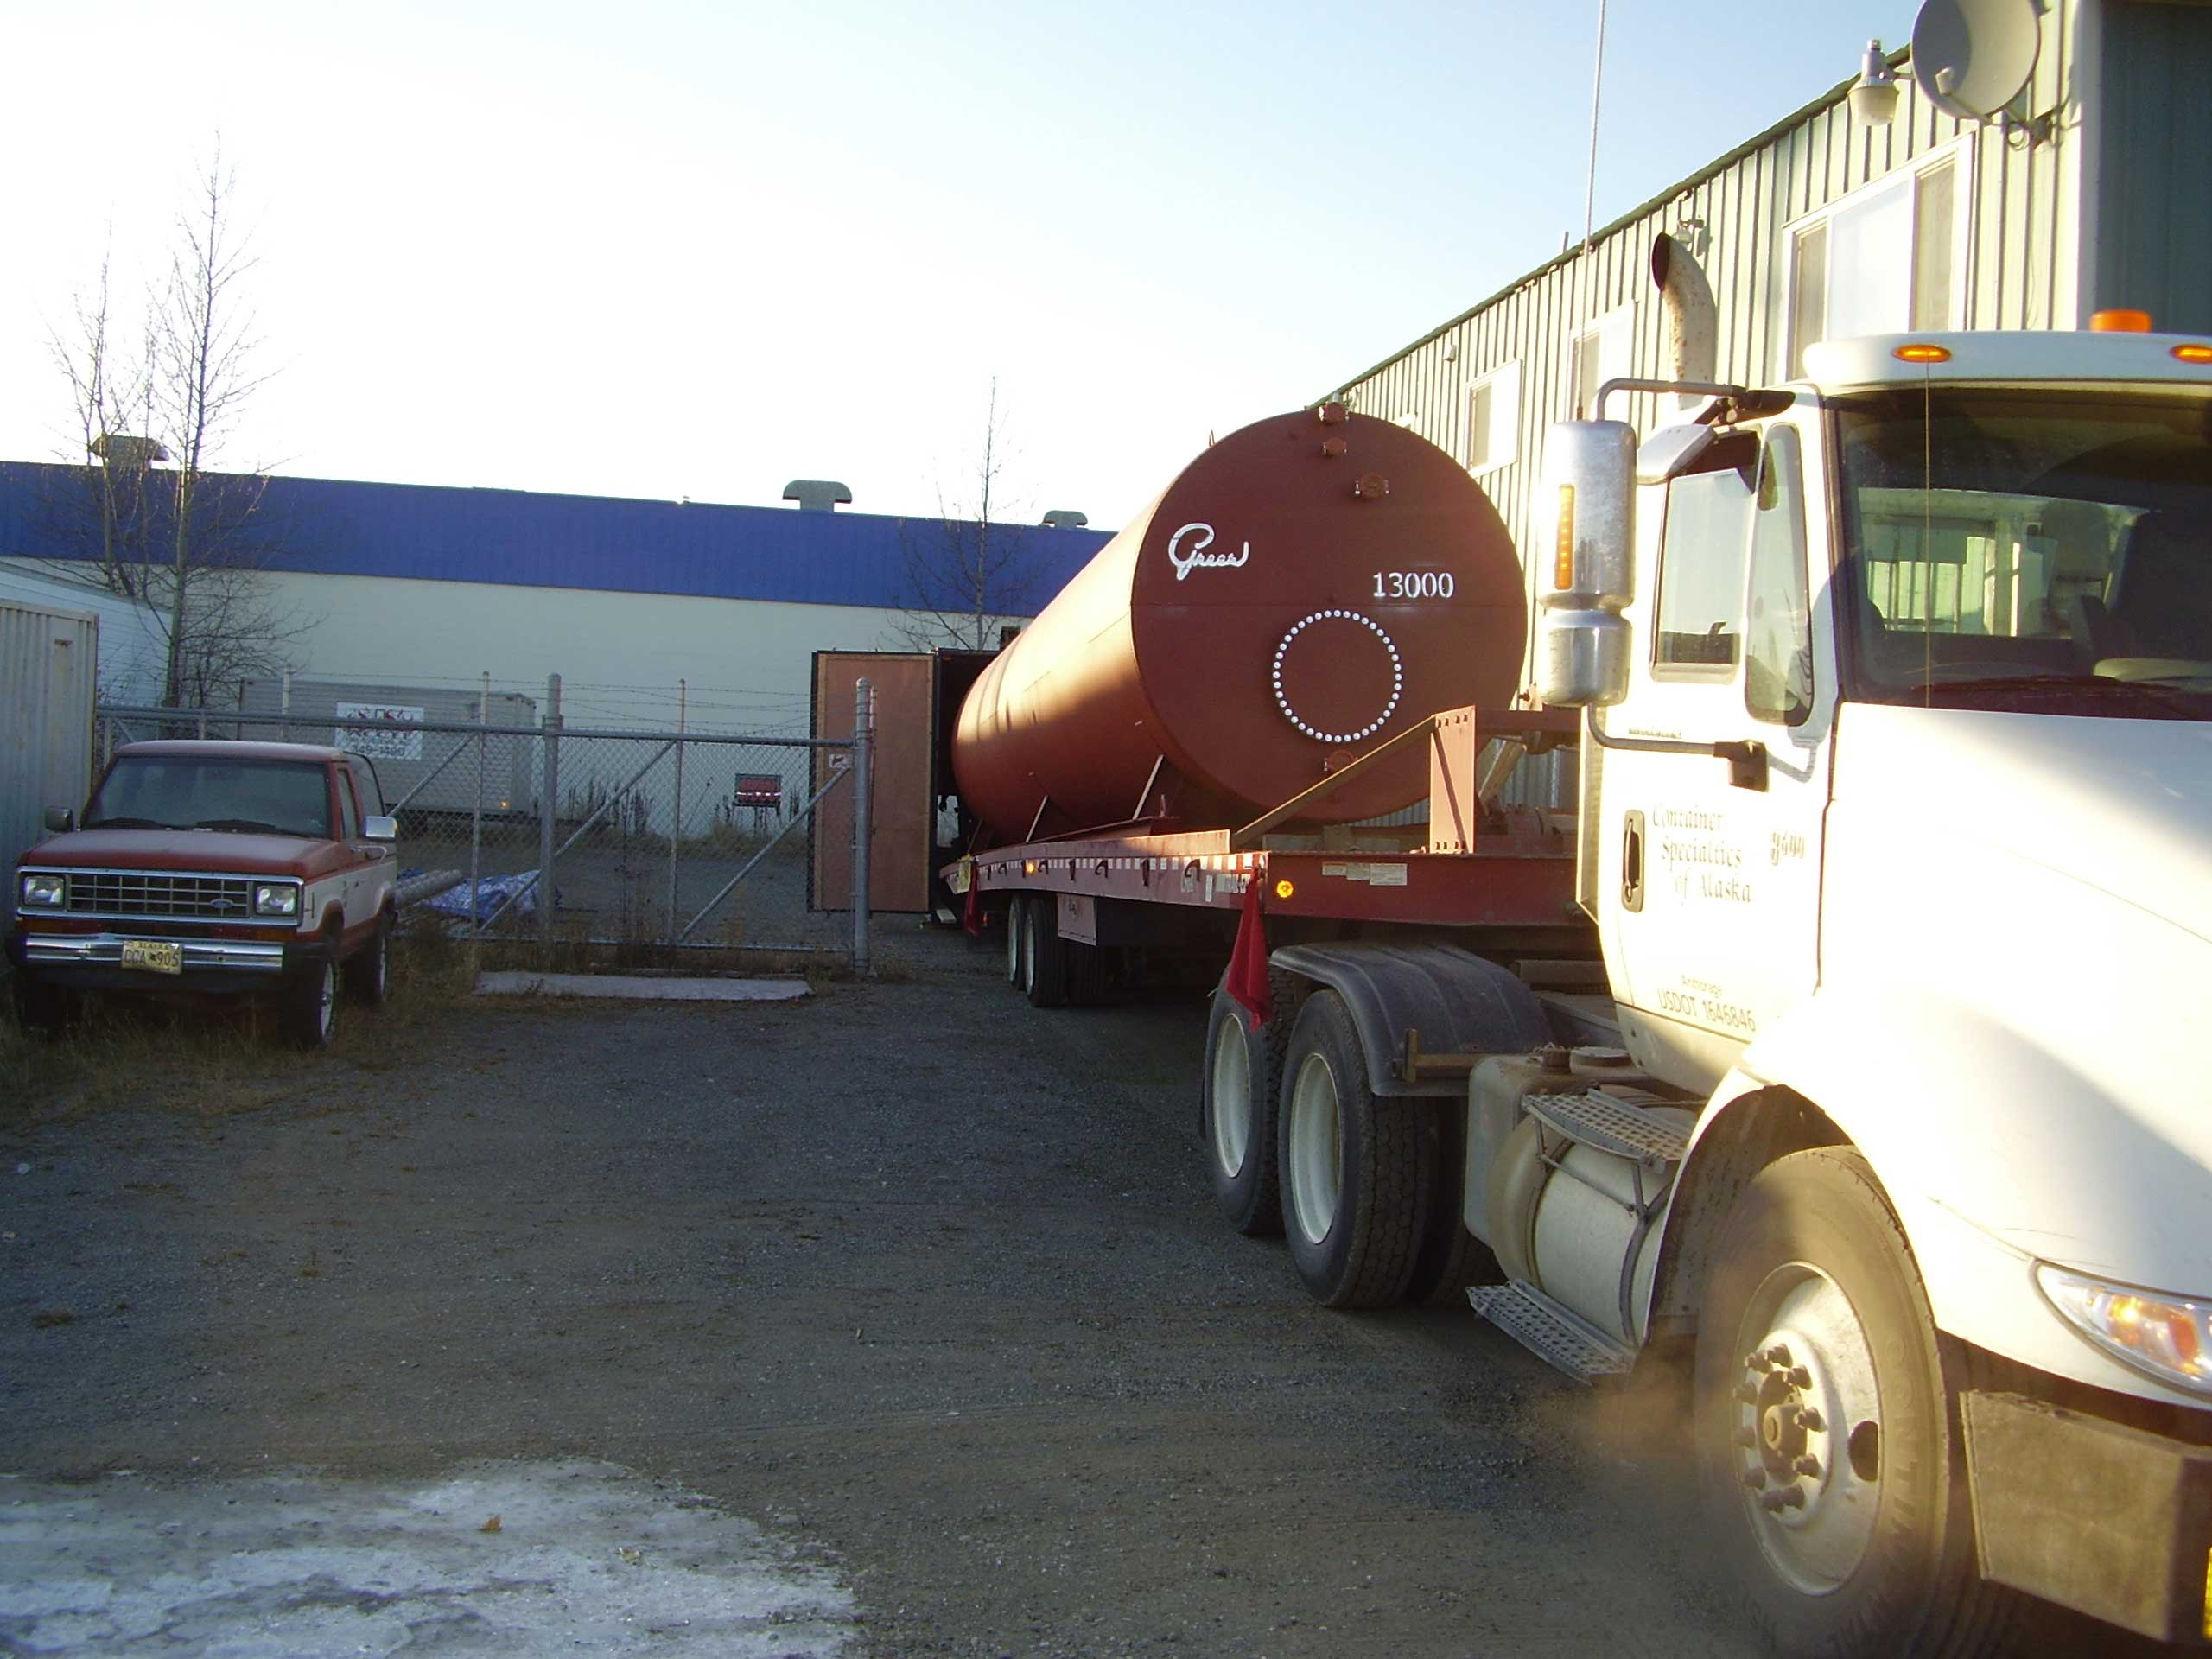 We modified this 53' container with external insulation to safely store the 13,000 gallon tank. Services included carefully loading the tank into the modified container.